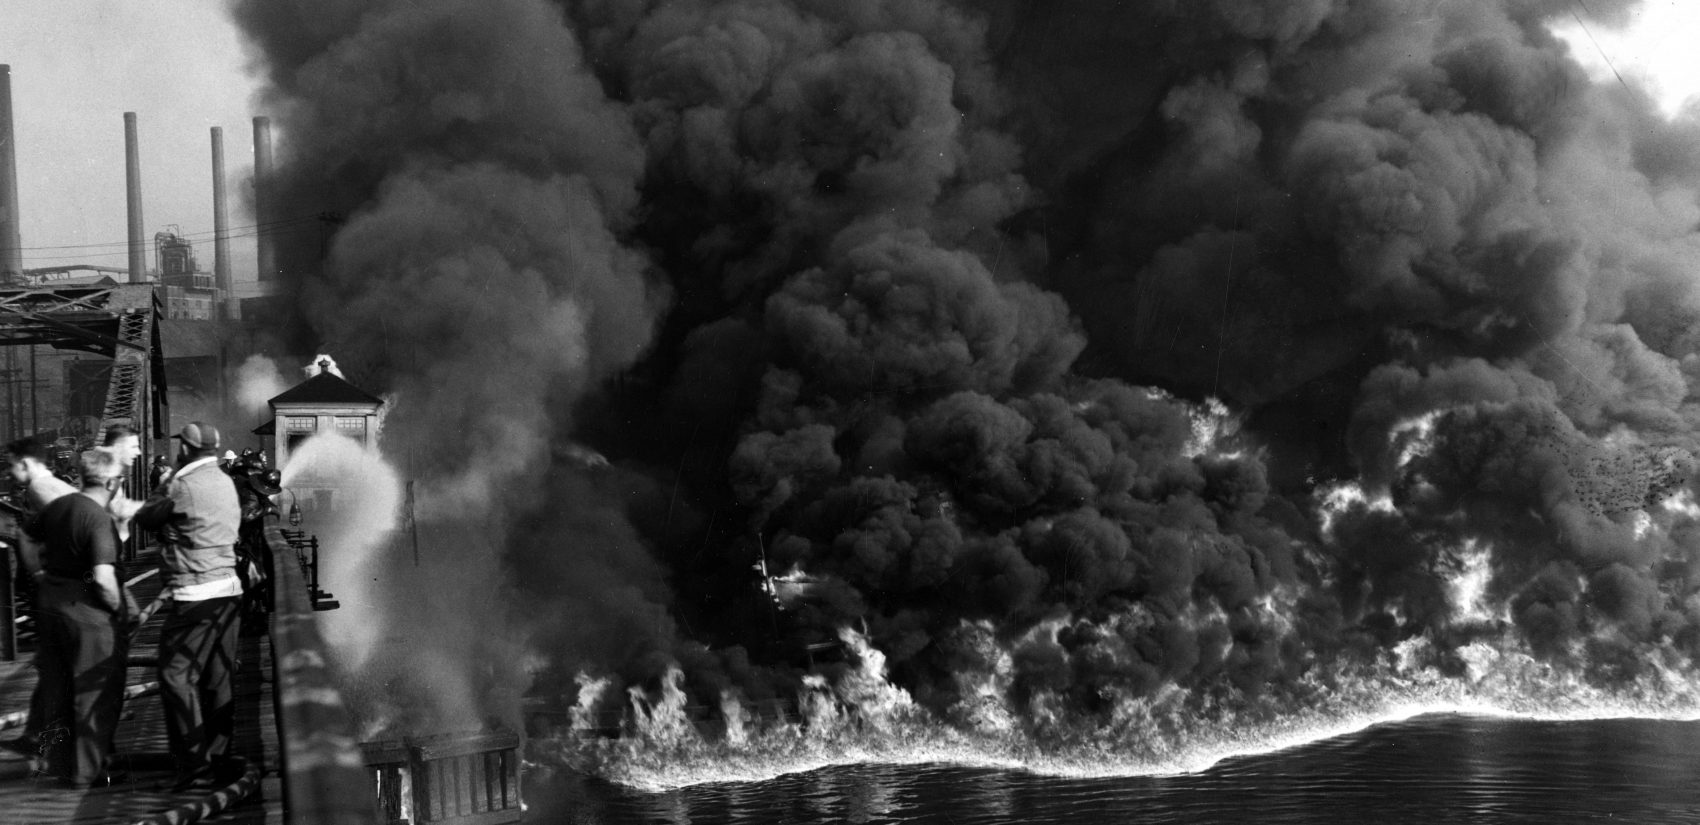 Fire on the Cuyahoga River, 1952. Many such fires occurred on the river before the Clean Water Act. (The Cleveland Press Collection, Michael Schwartz Library, Cleveland State University)